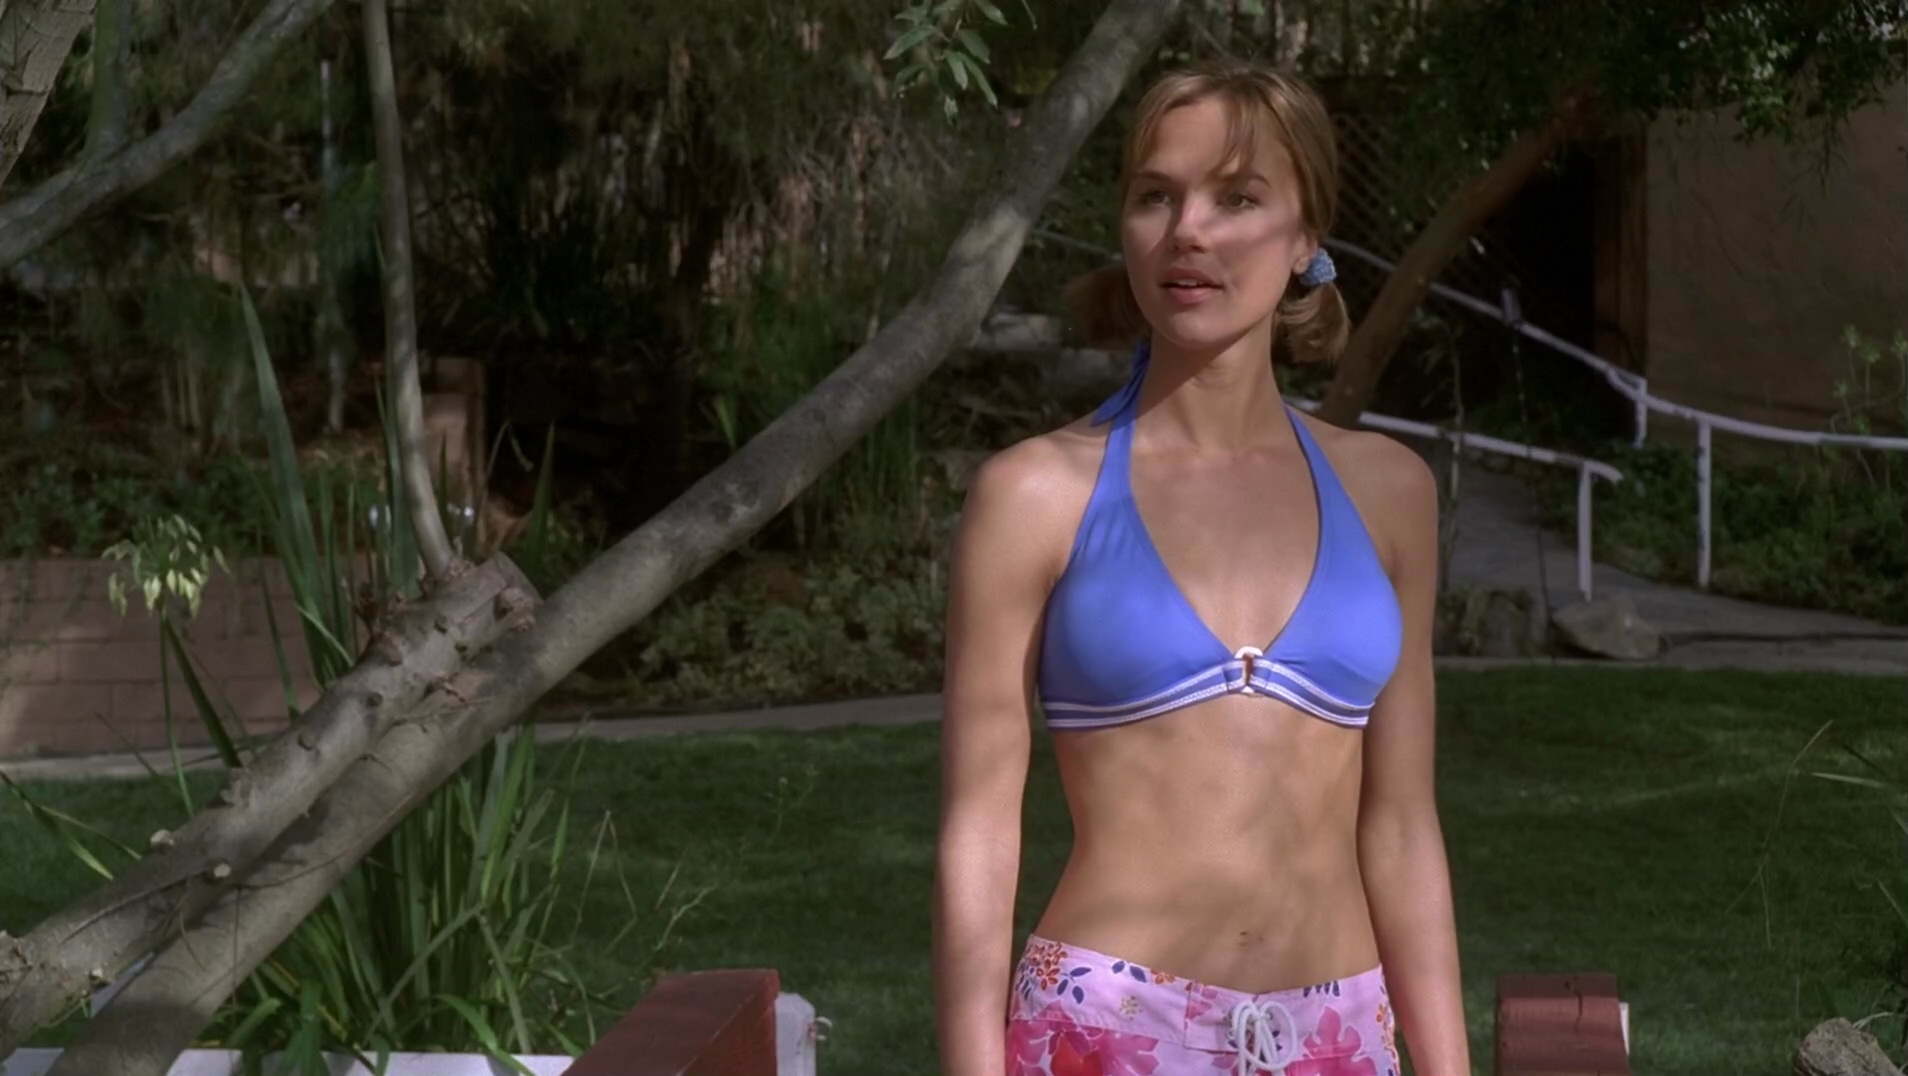 American Pie Band Camp Unrated Scenes watch online - arielle kebbel – american pie: band camp